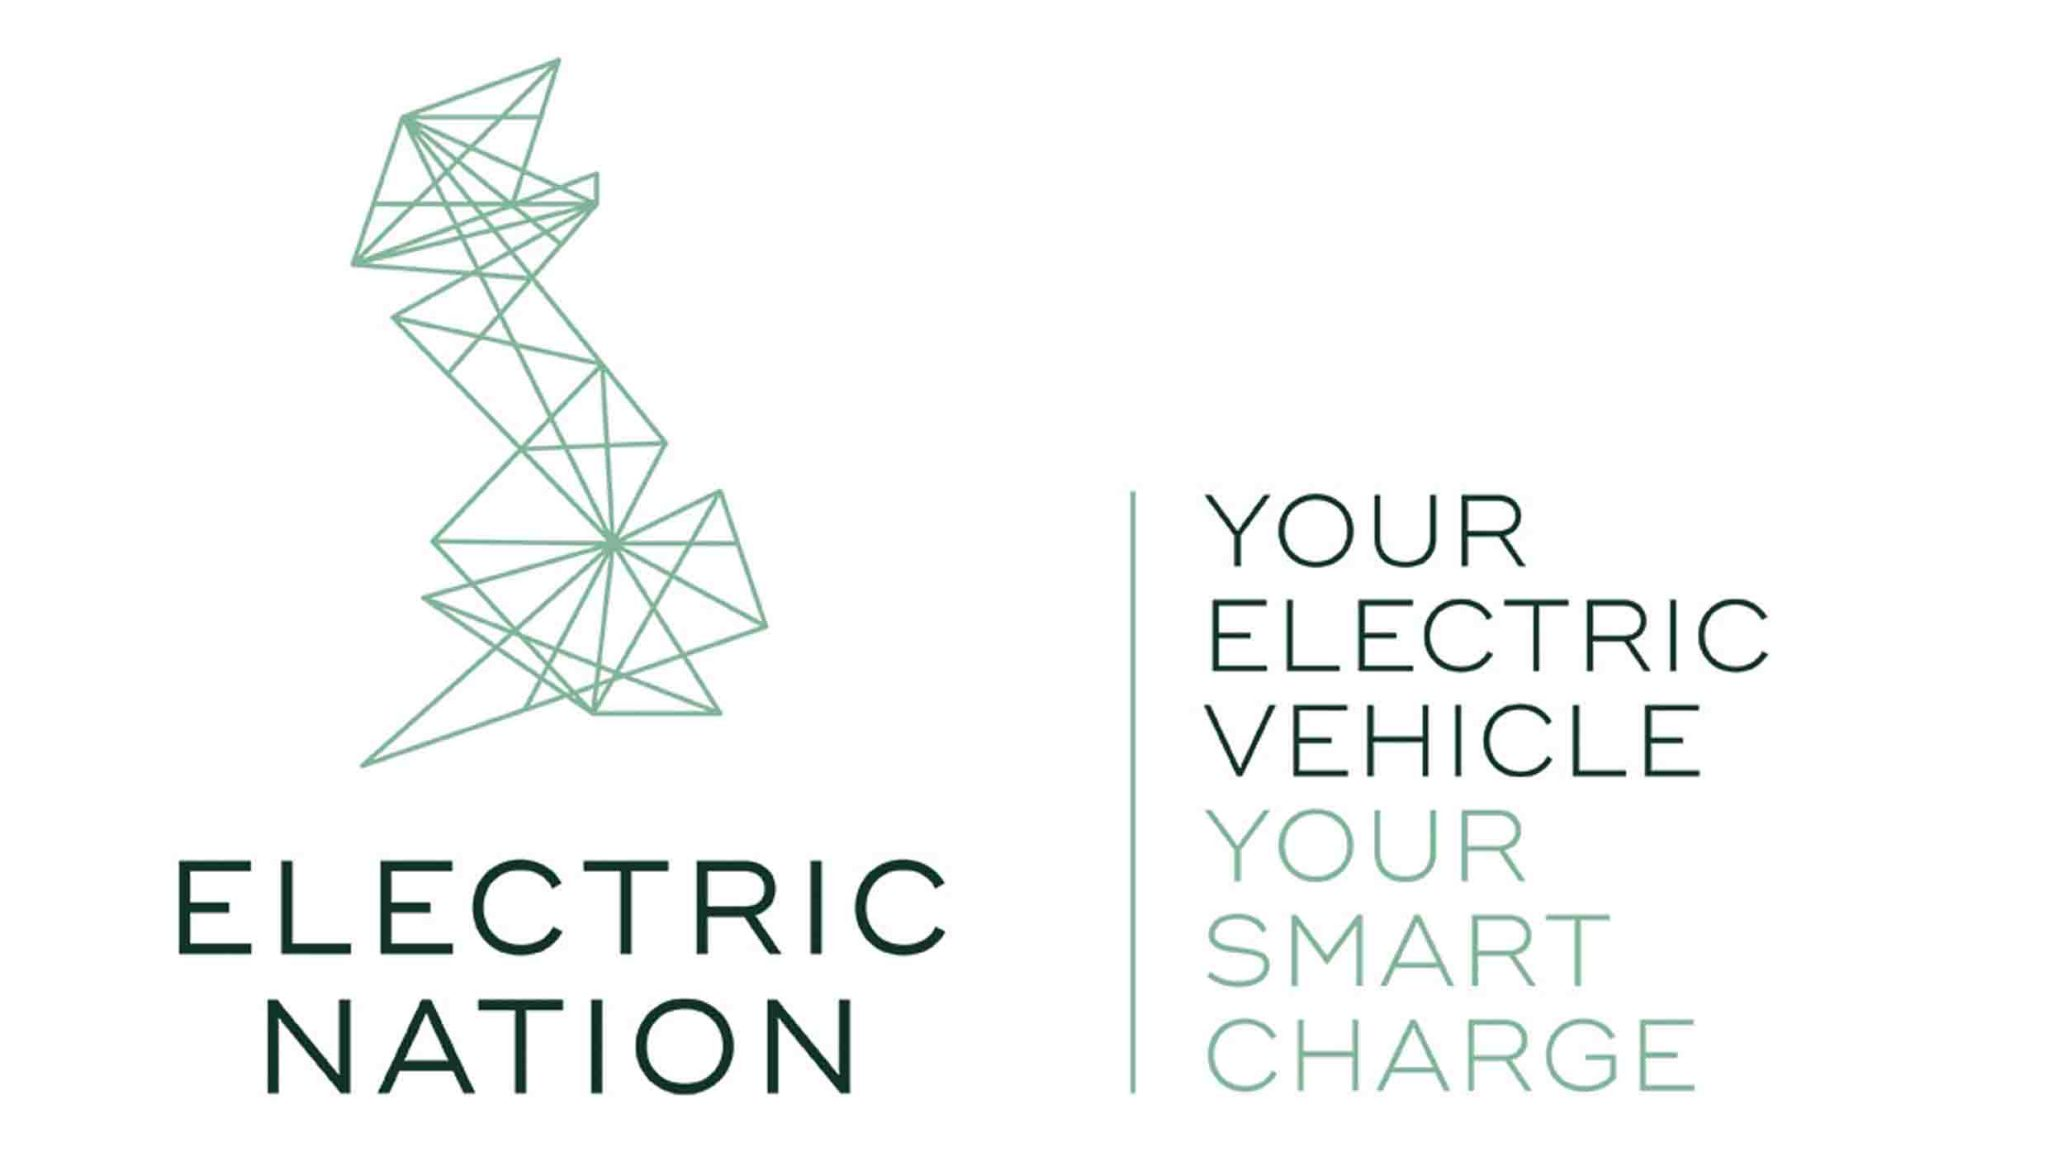 Electric Nation - Your Electric Vehicle, your smart charge